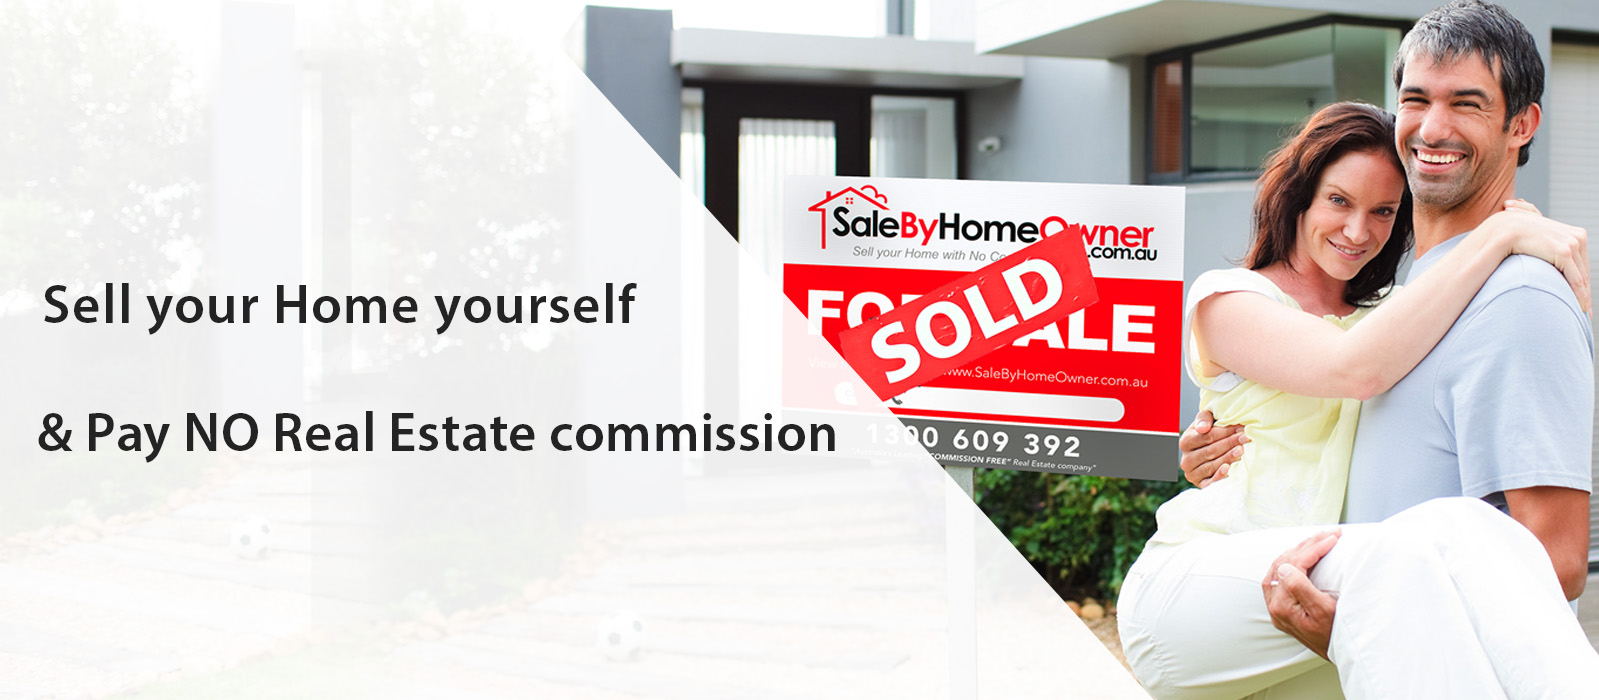 Choosing the right marketing campaign to sell your property